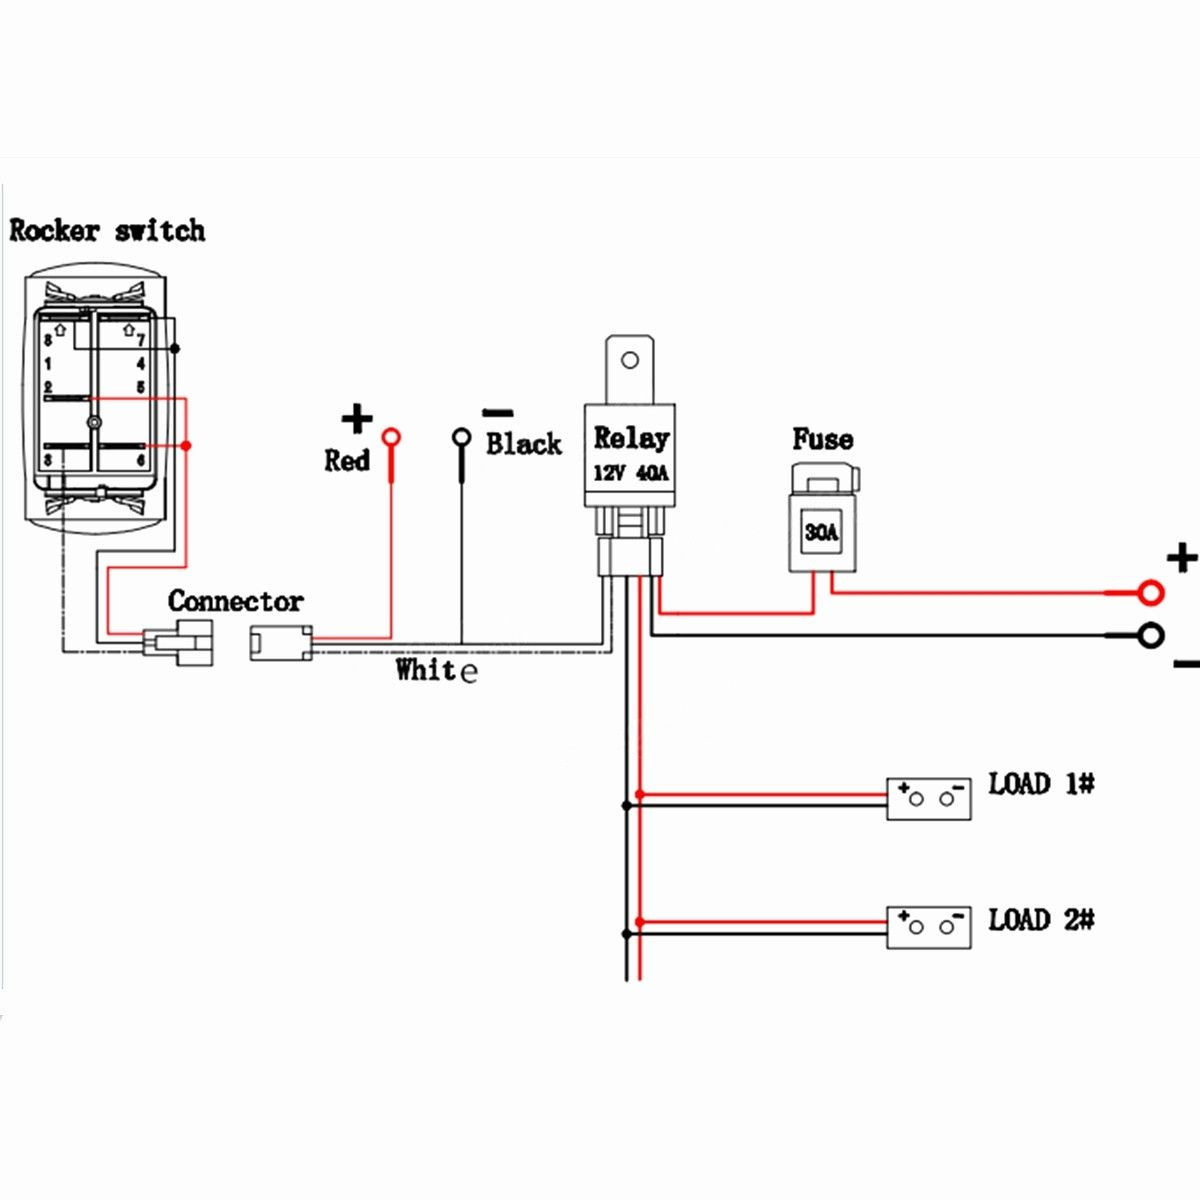 4 Prong Rocker Switch Wiring Diagram New In